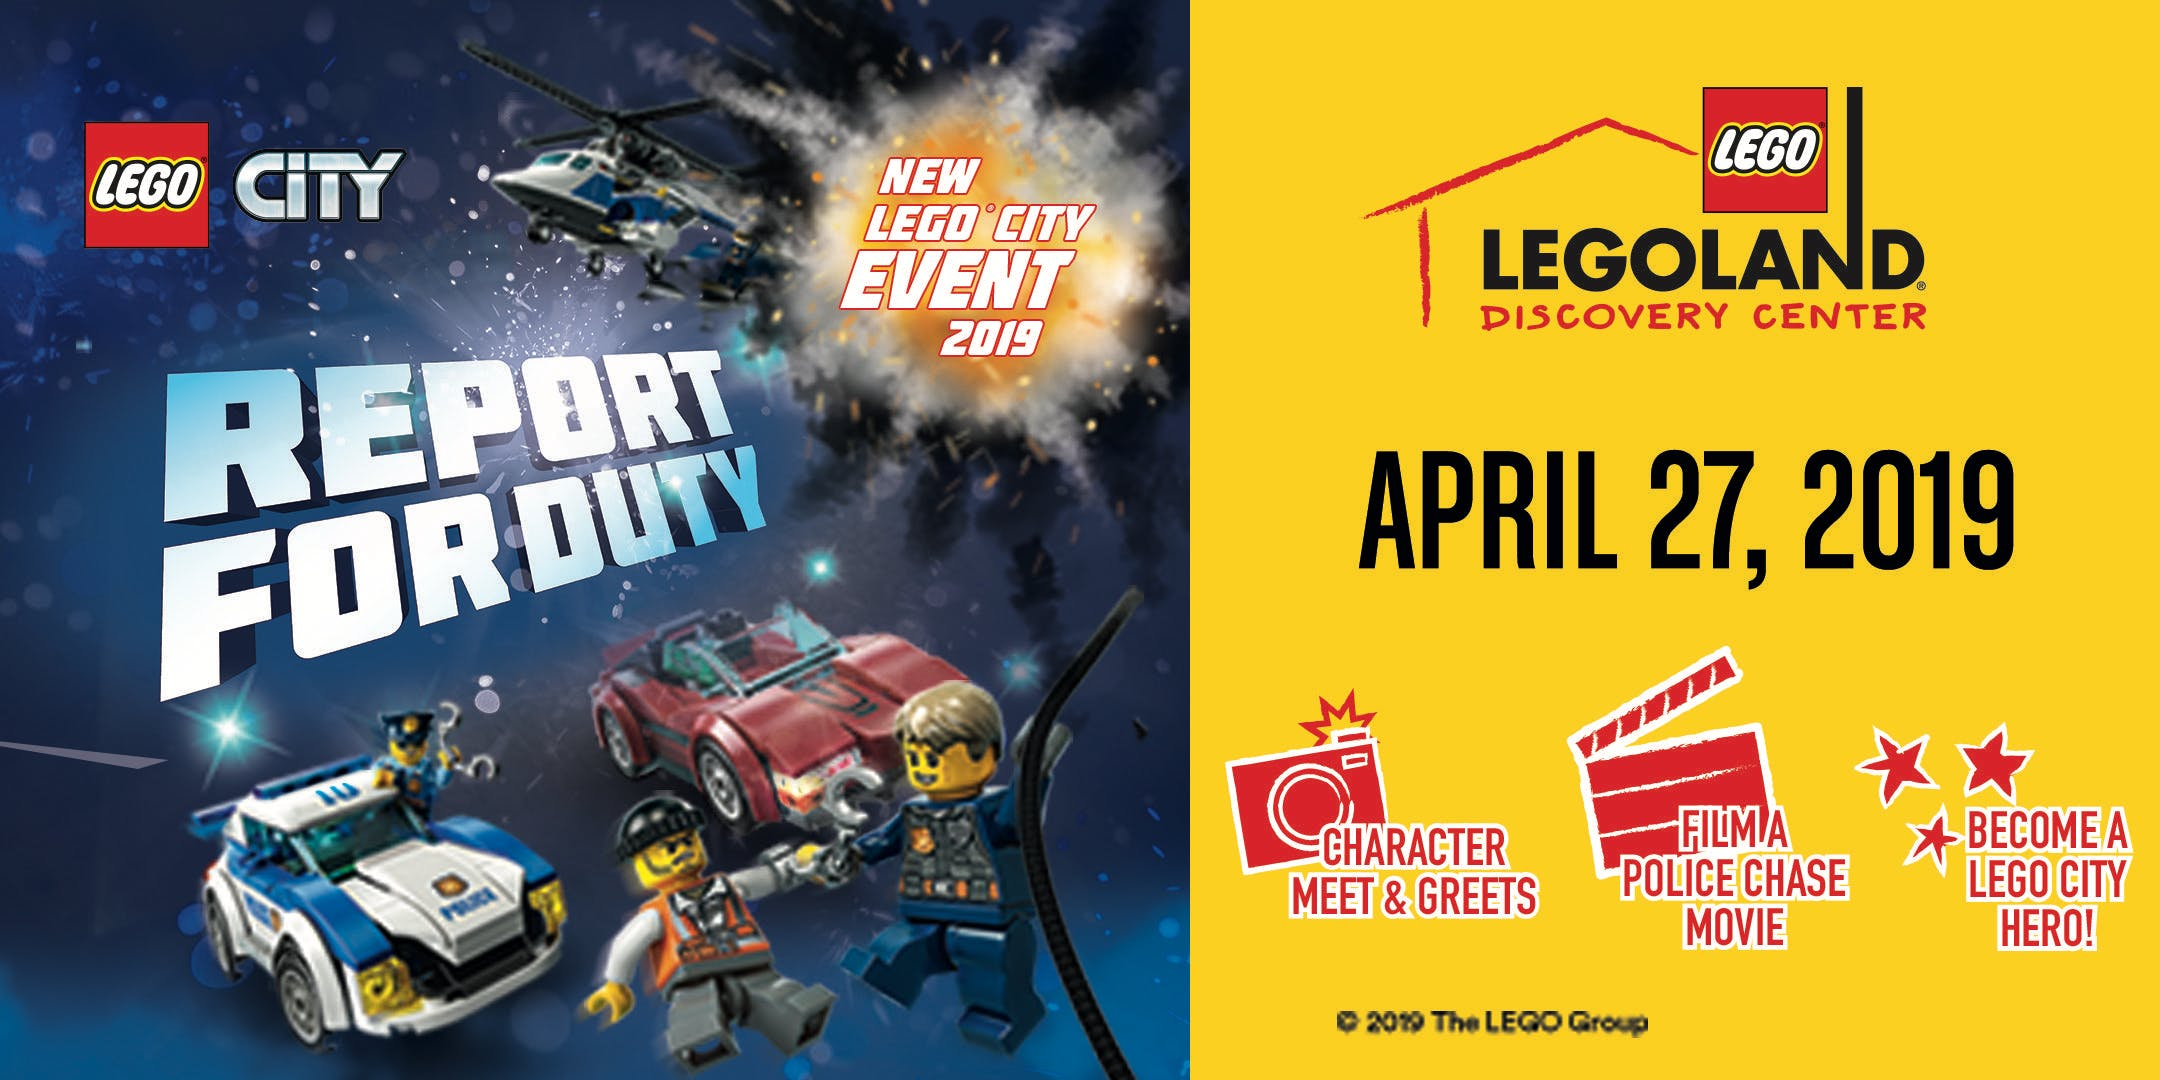 LEGO® City: Report for Duty Annual Pass Holder Character Breakfast